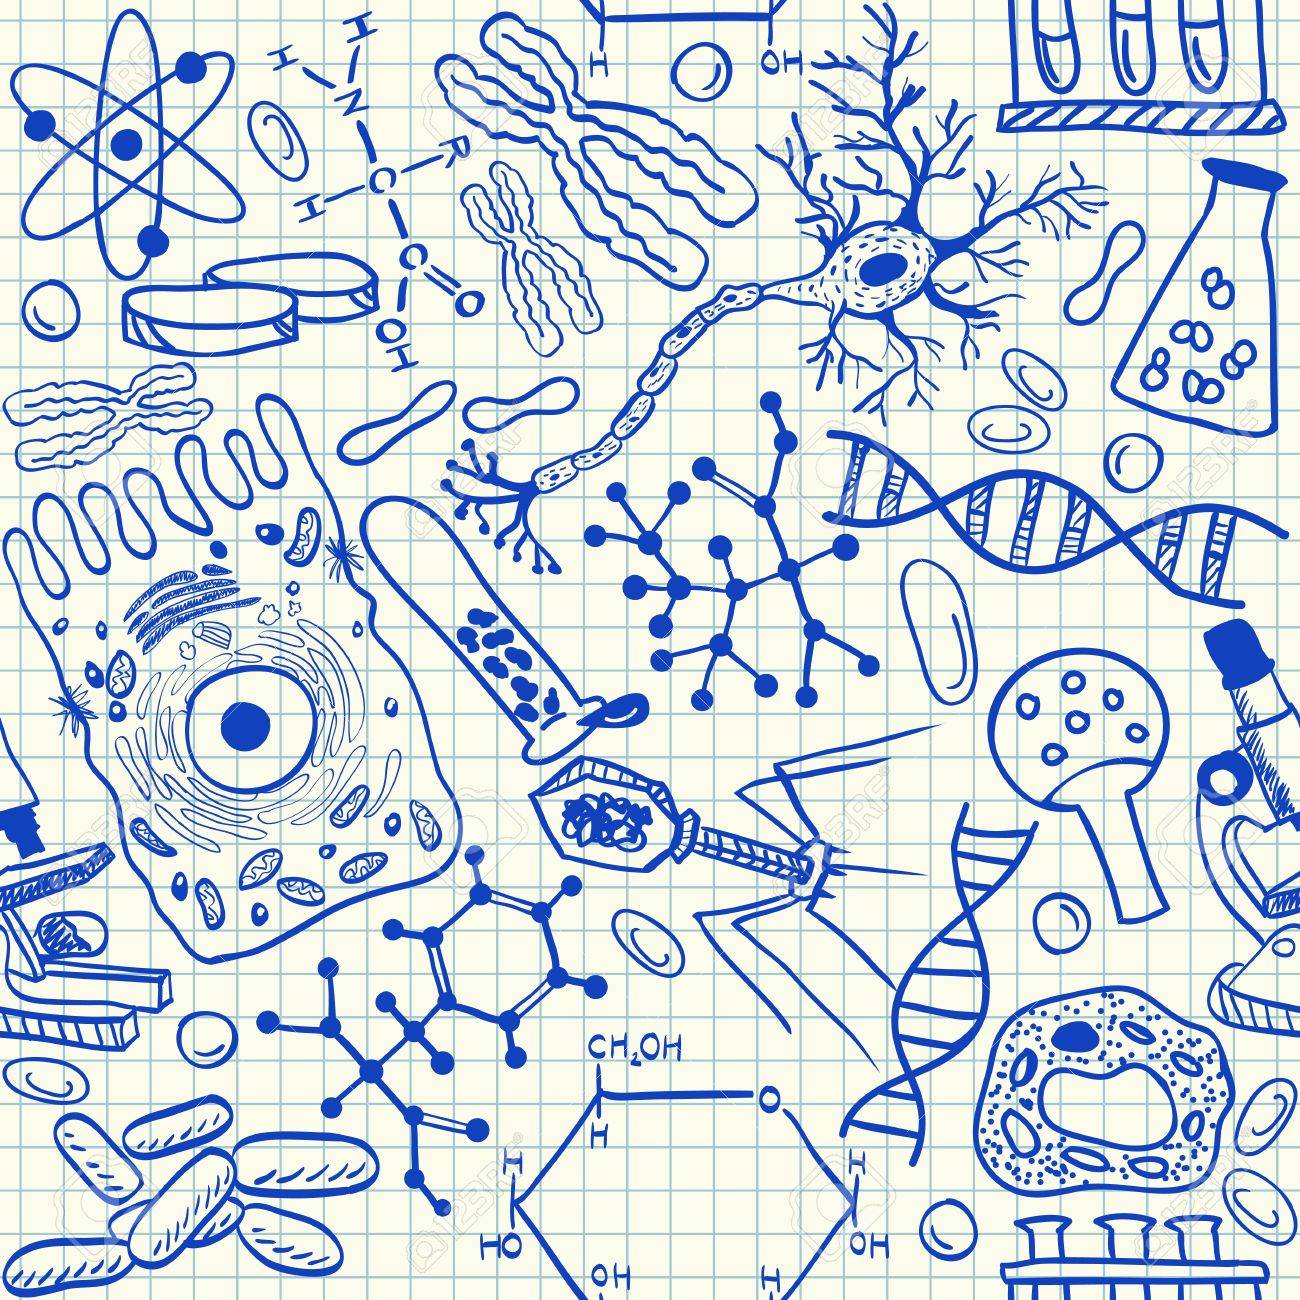 Biology doodles on school squared paper, seamless pattern Stock Vector - 19295745